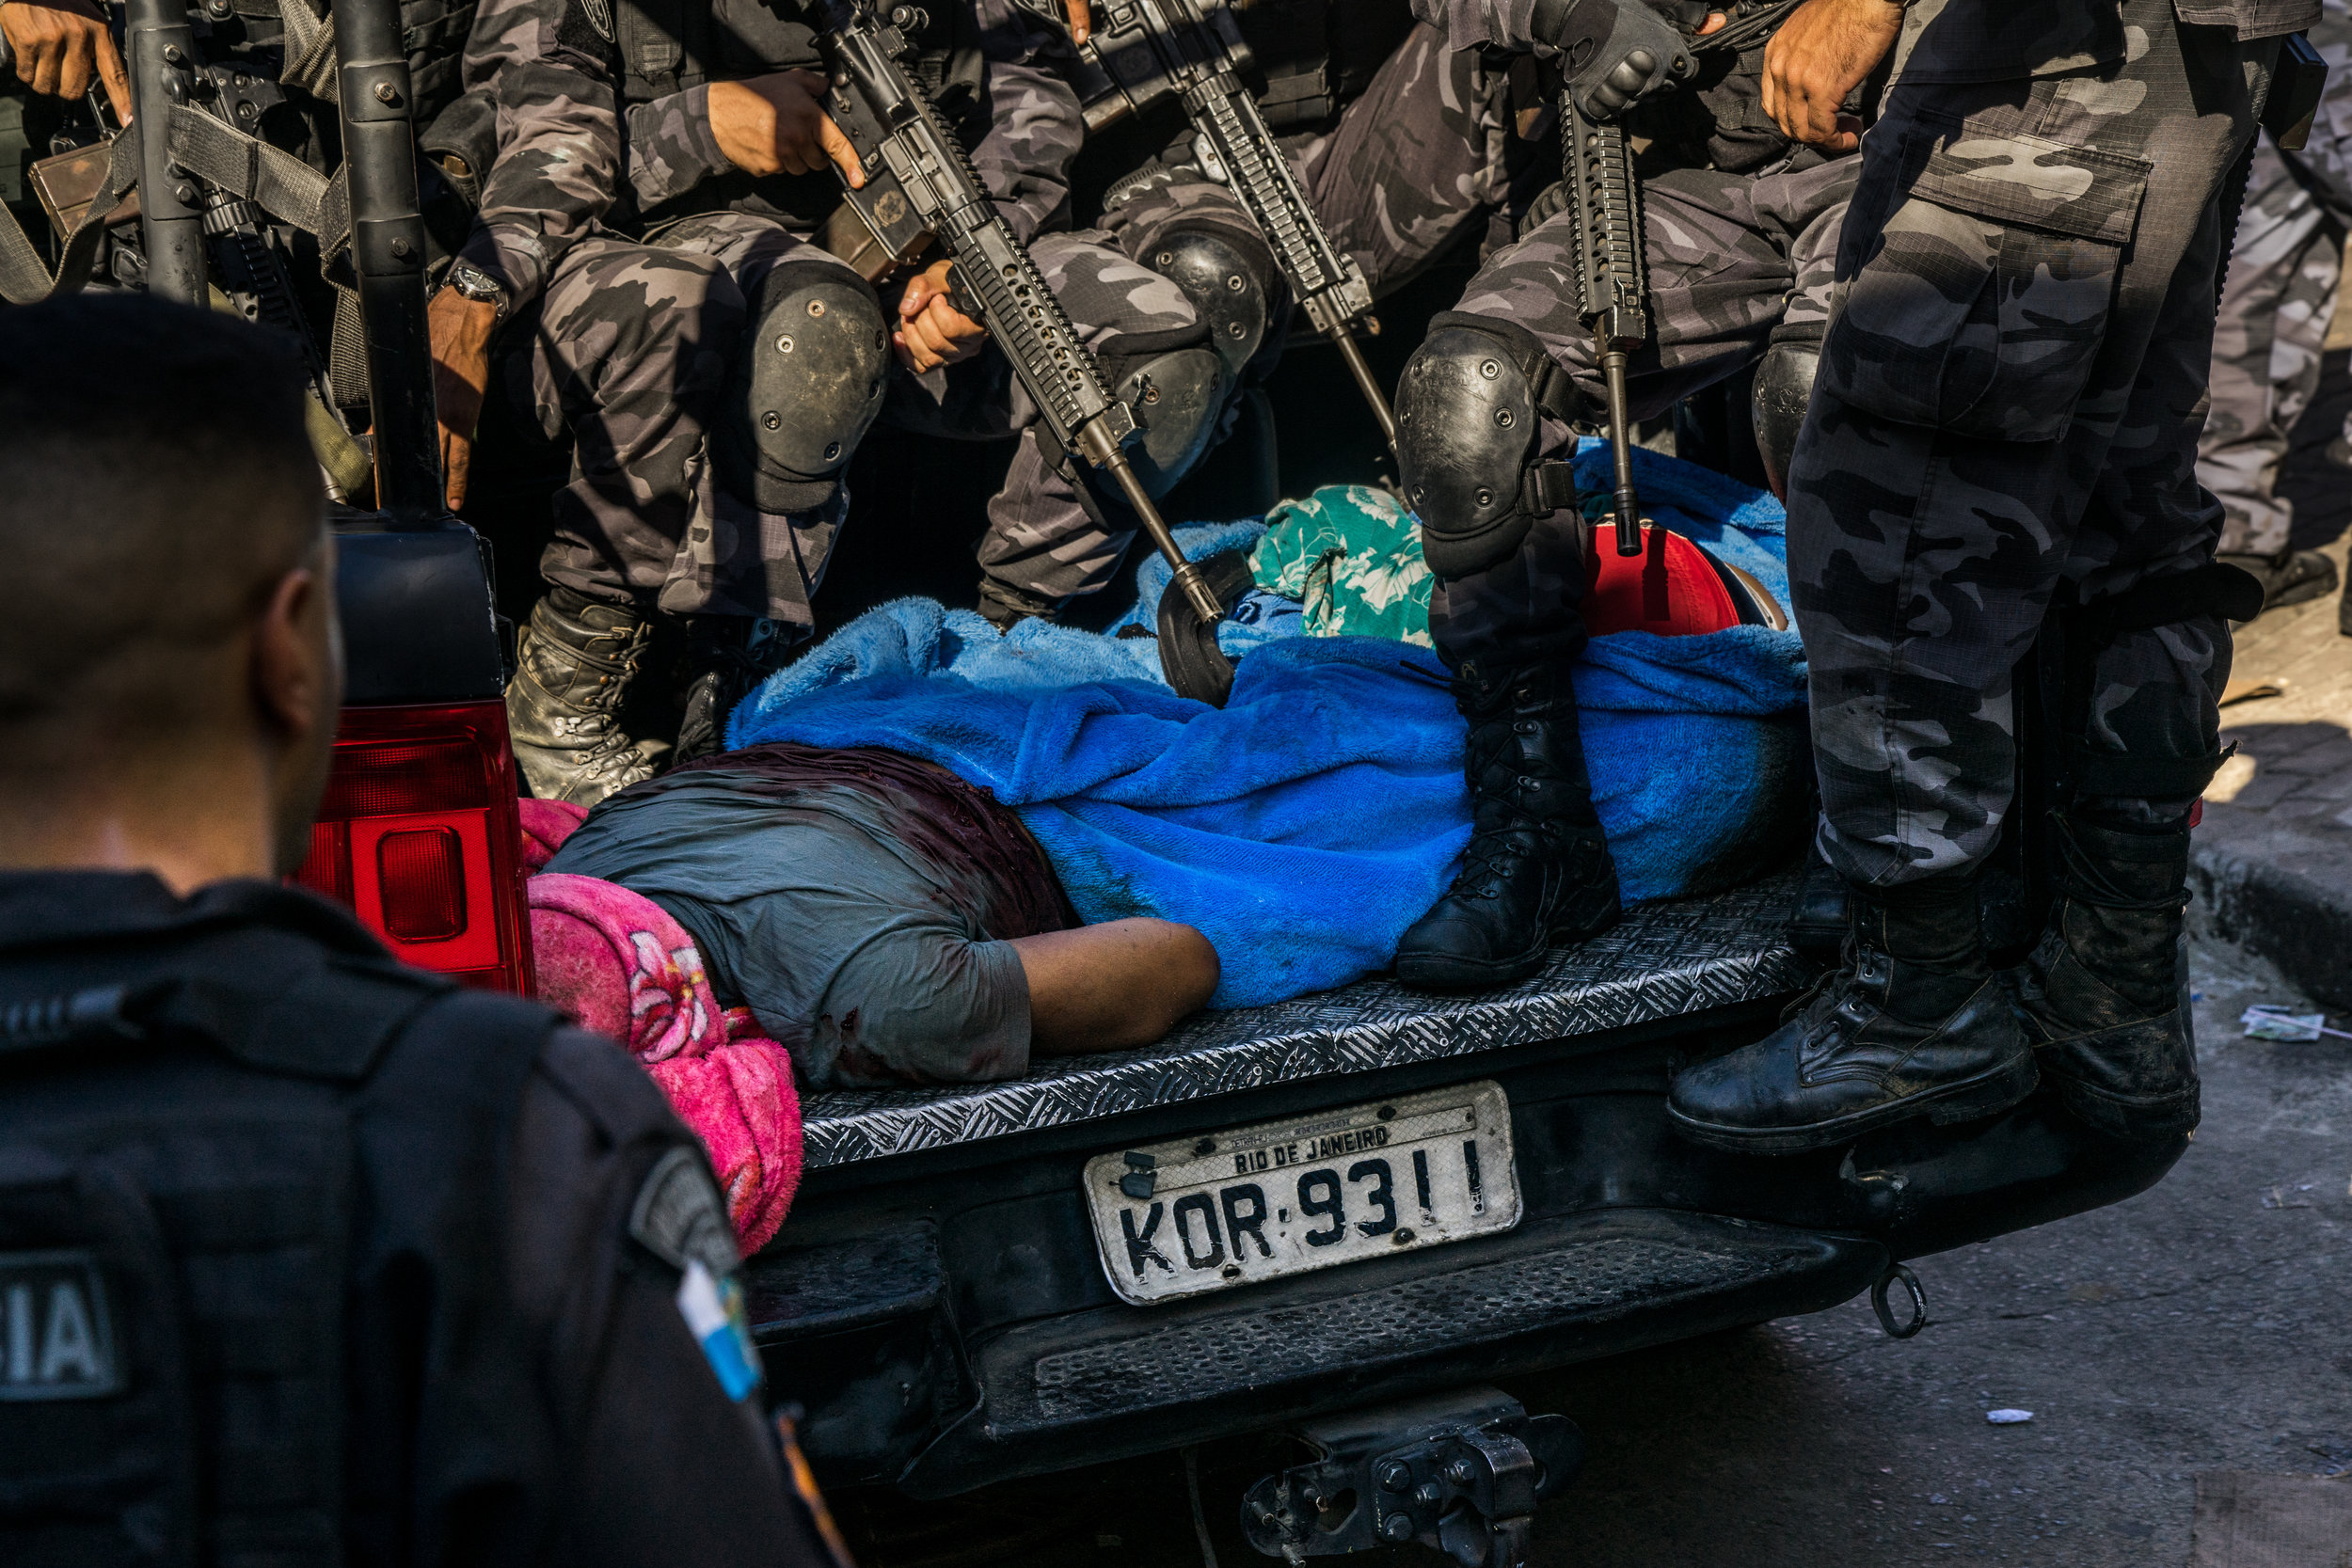 Soldiers remove the bodies of alleged drug dealers following an early morning operation in Rocinha favela on March 24, 2018. Locals say that at least two of the eight killed during the operations were innocent. (C.H. Gardiner)